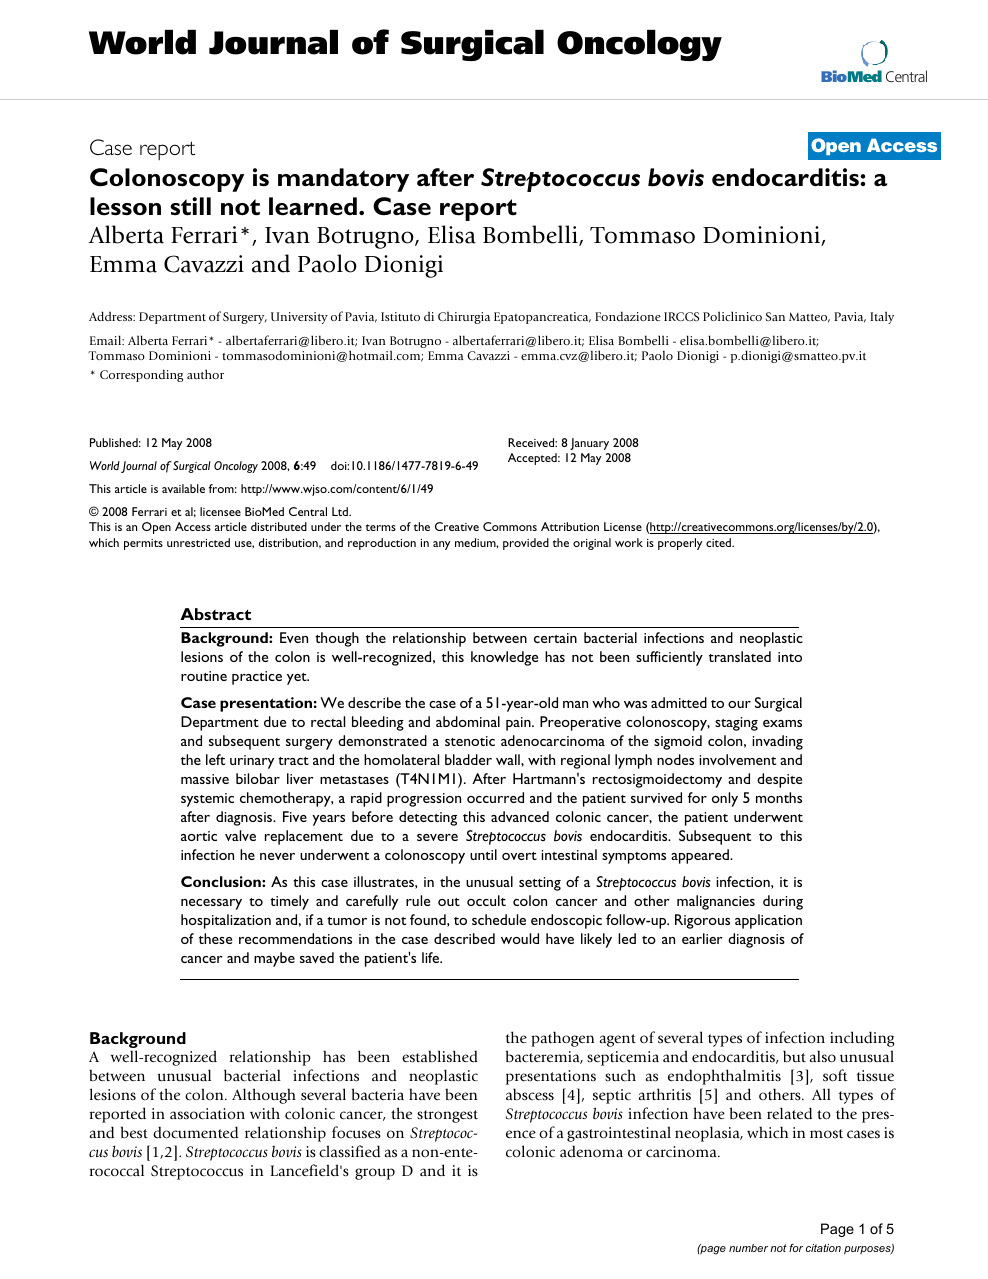 Colonoscopy Is Mandatory After Streptococcus Bovis Endocarditis A Lesson Still Not Learned Case Report Topic Of Research Paper In Clinical Medicine Download Scholarly Article Pdf And Read For Free On Cyberleninka